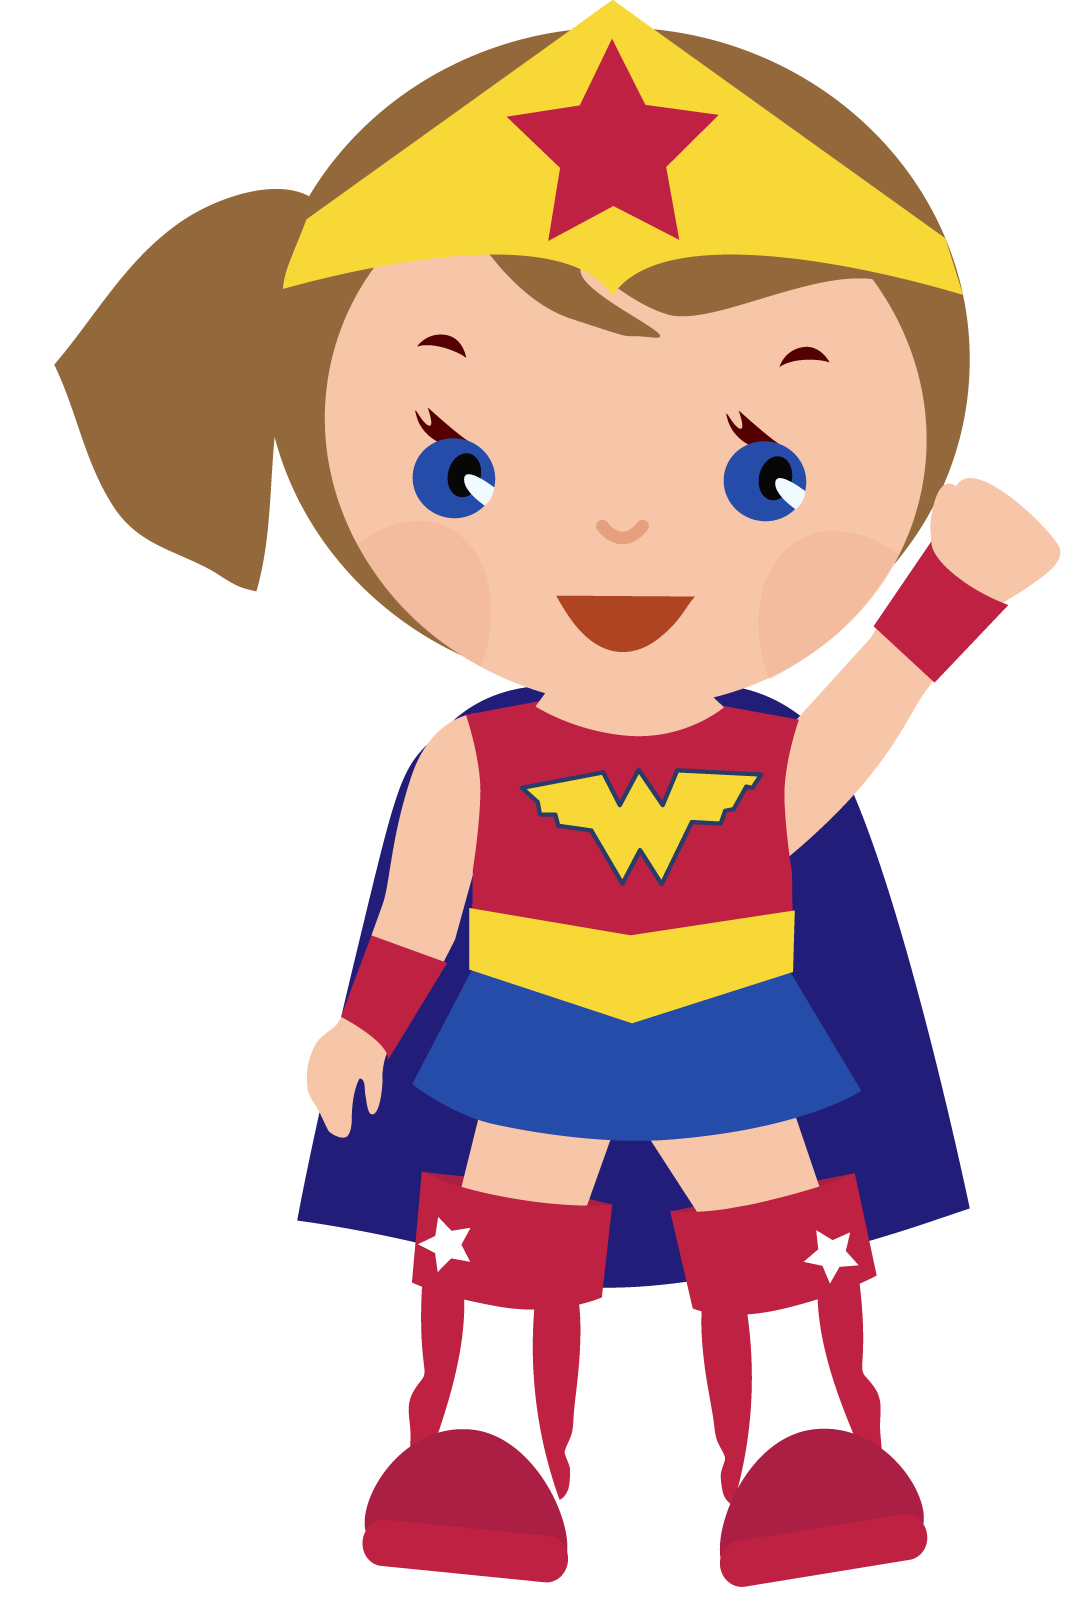 Telephone clipart female person. Superhero girl super hero